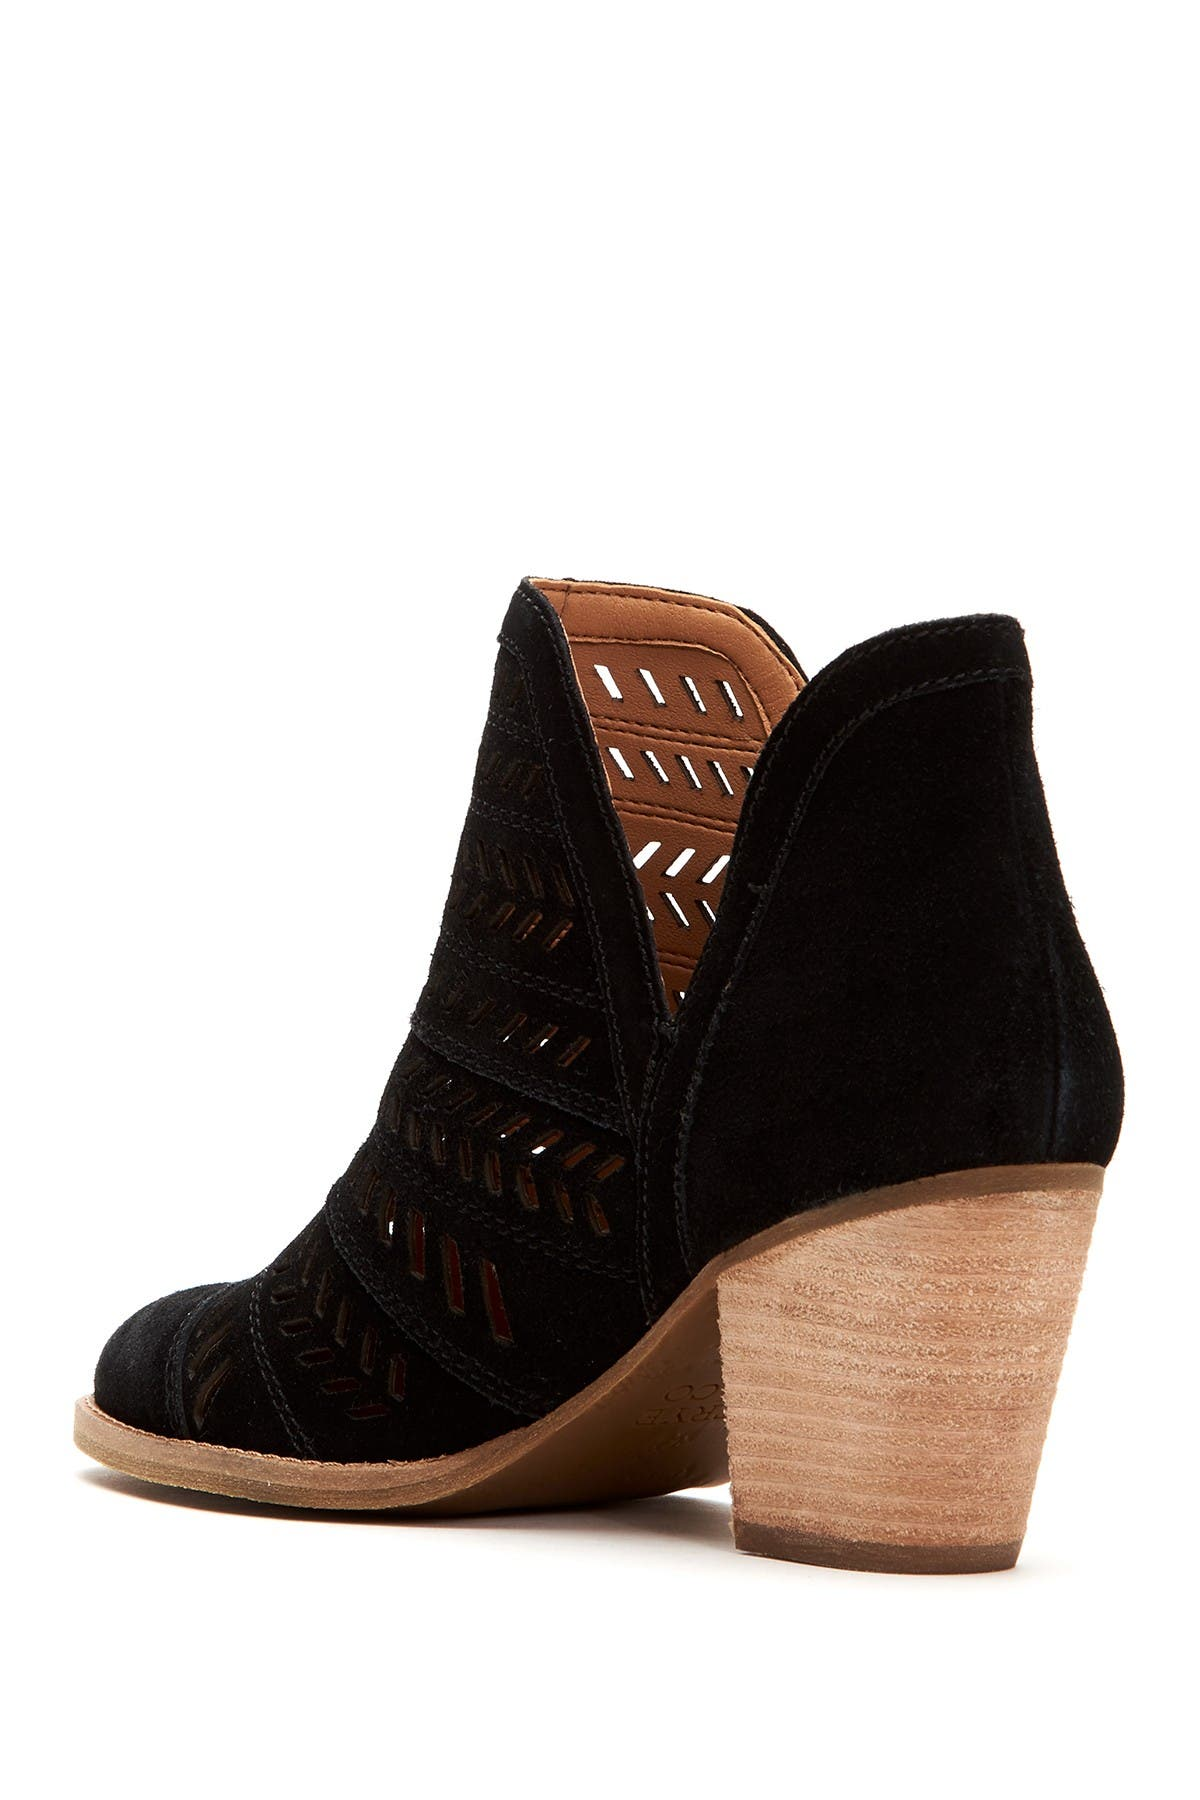 Frye & Co Allister Feather Bootie